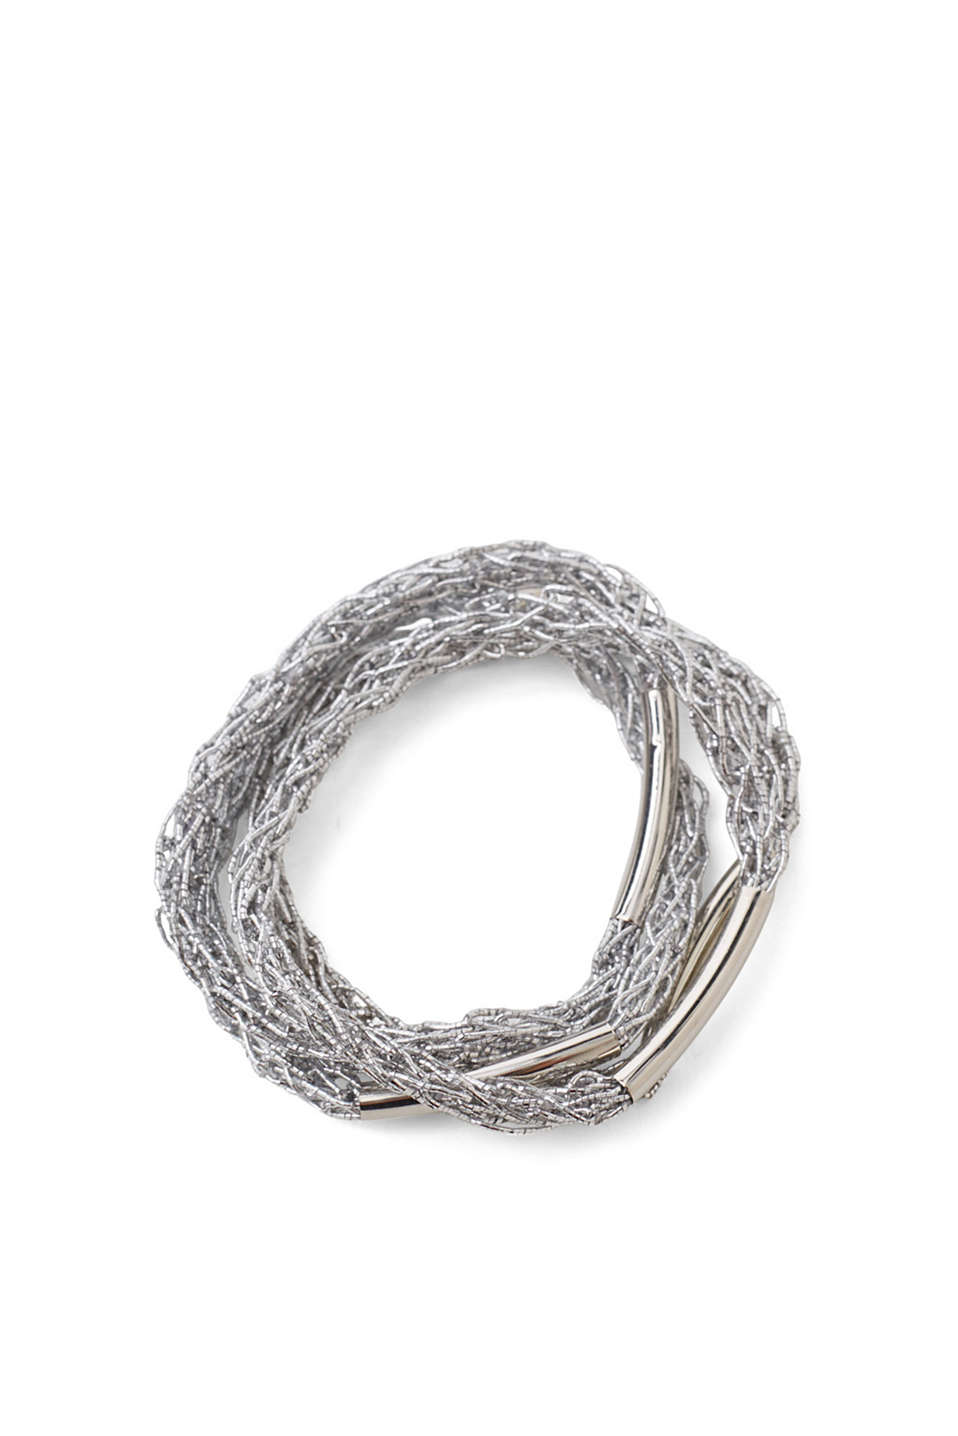 Four braided bracelets in a silver shade